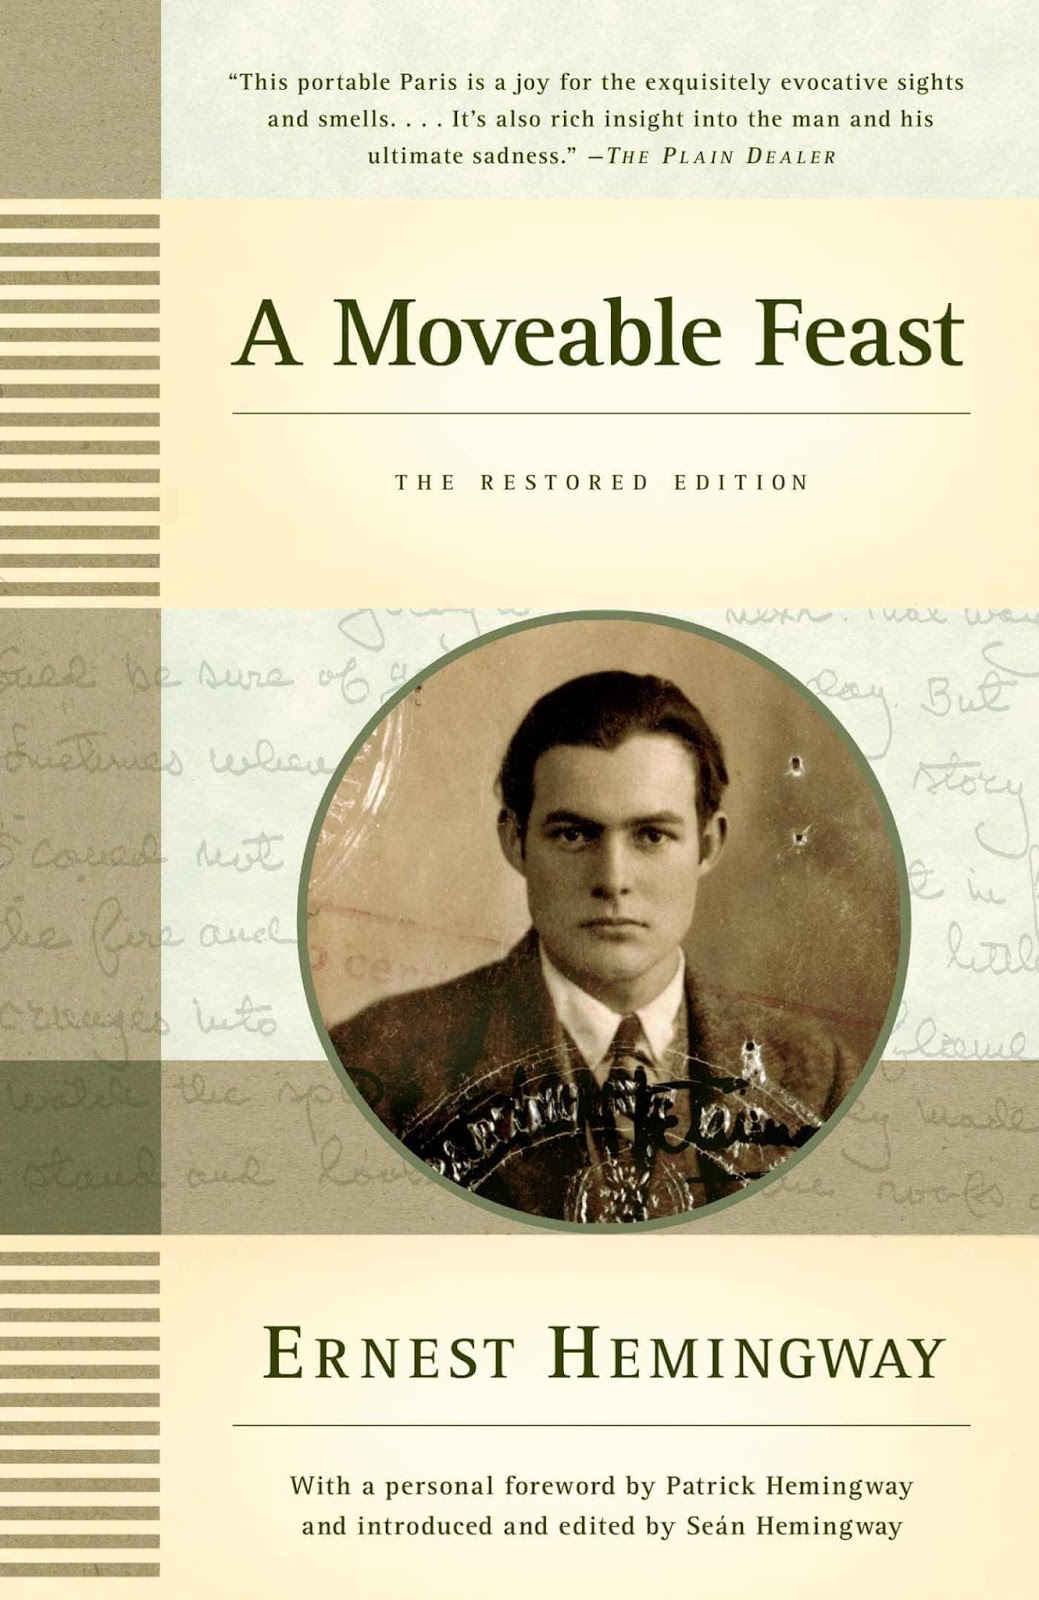 Memoir Books · A Moveable Feast By Ernest Hemingway Download Free Ebook